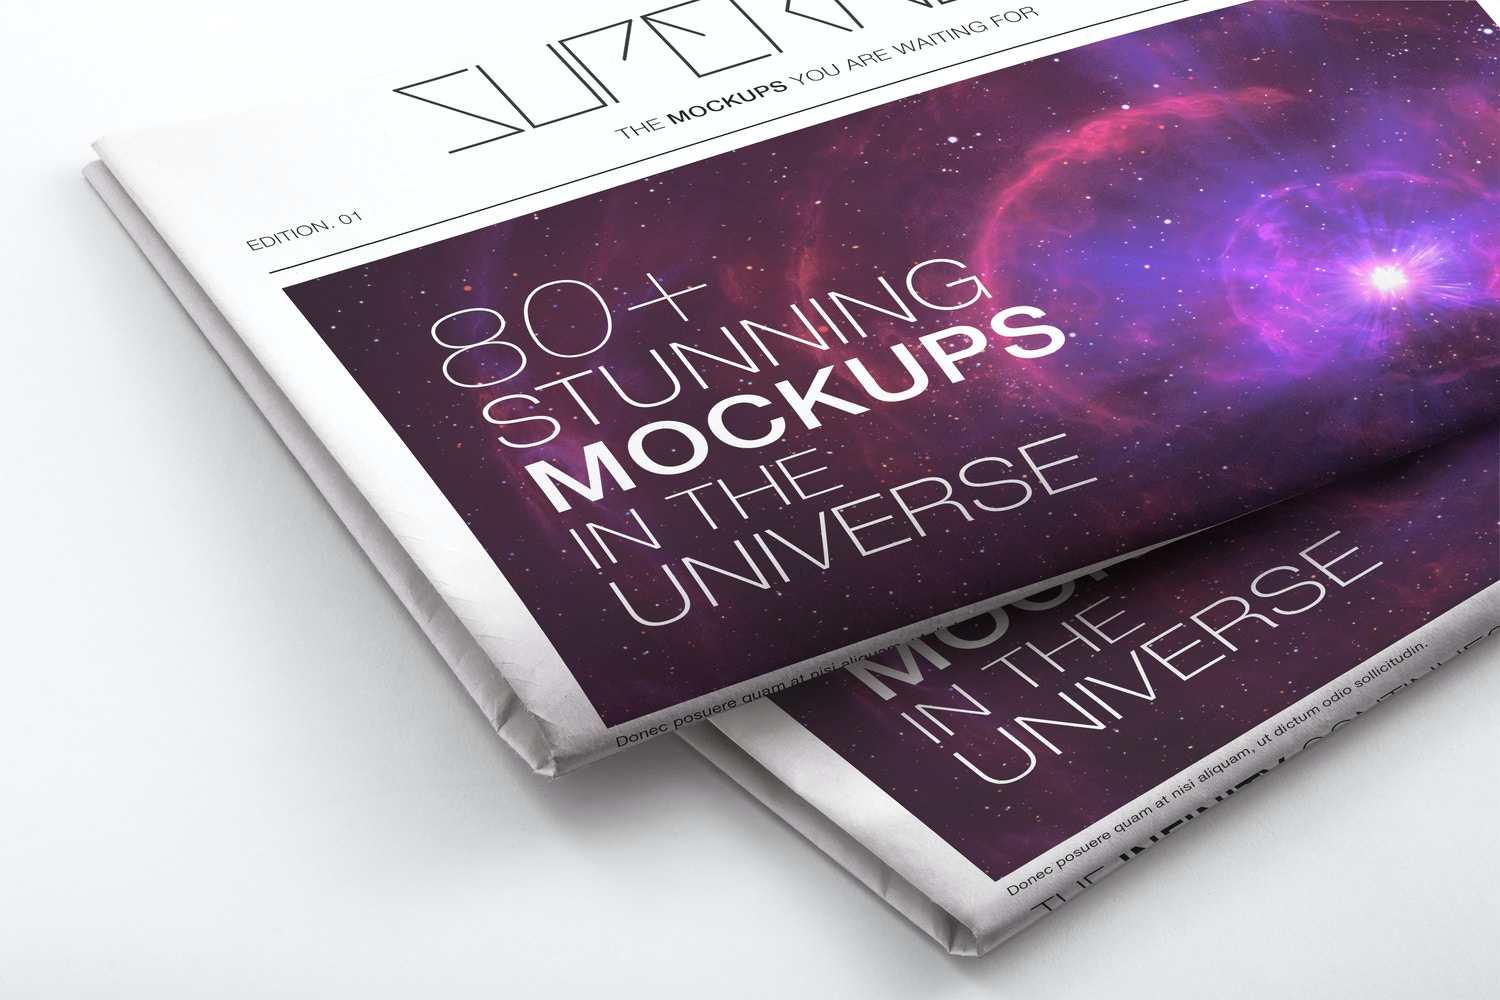 Newspaper PSD Mockup 02 by Original Mockups on Original Mockups